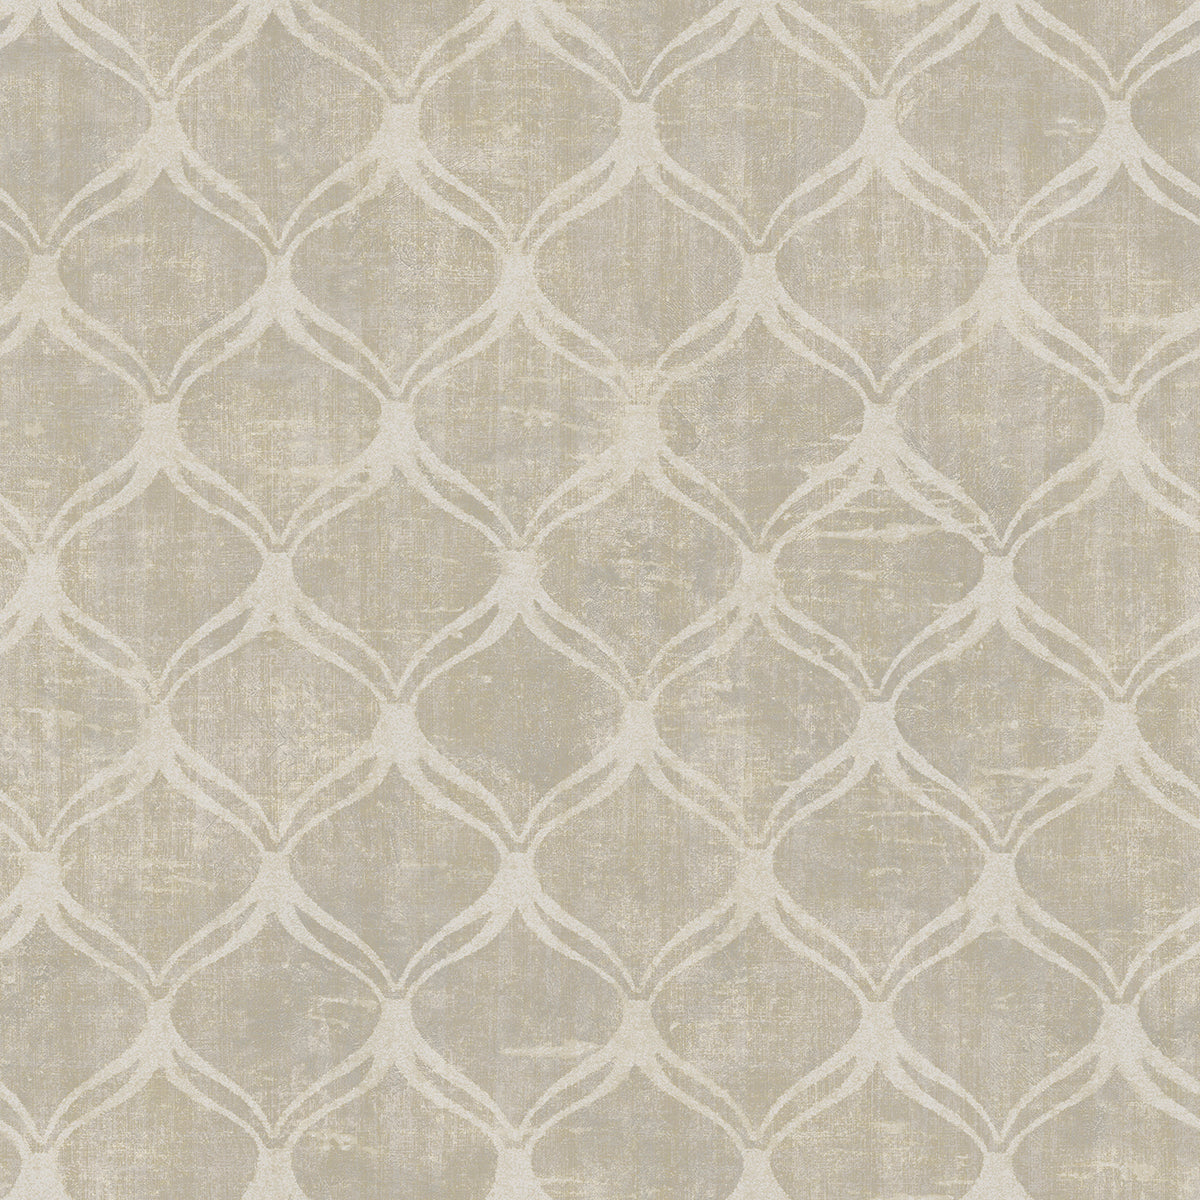 Bowery Taupe Ogee Wallpaper